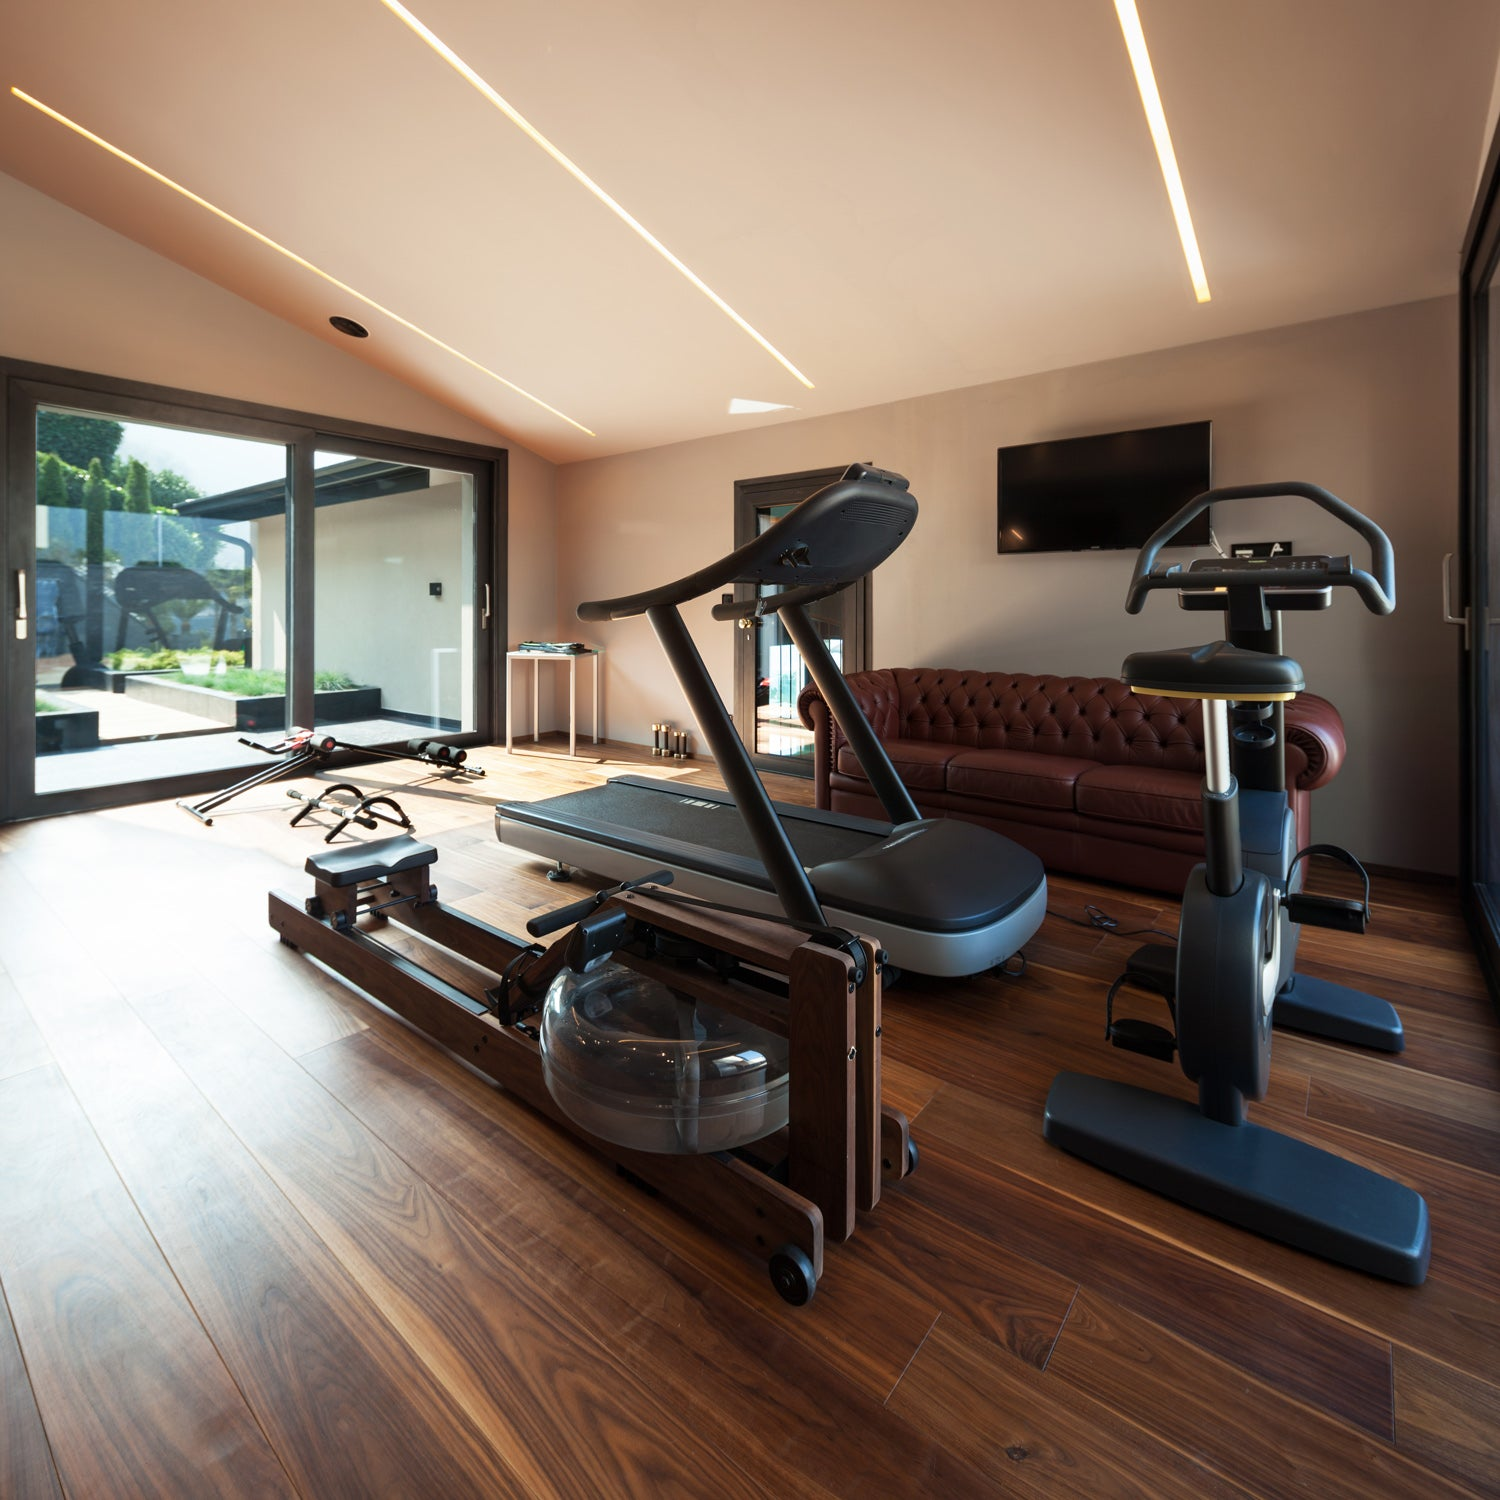 4 Tips For Setting Up A Home Gym In Your Garage